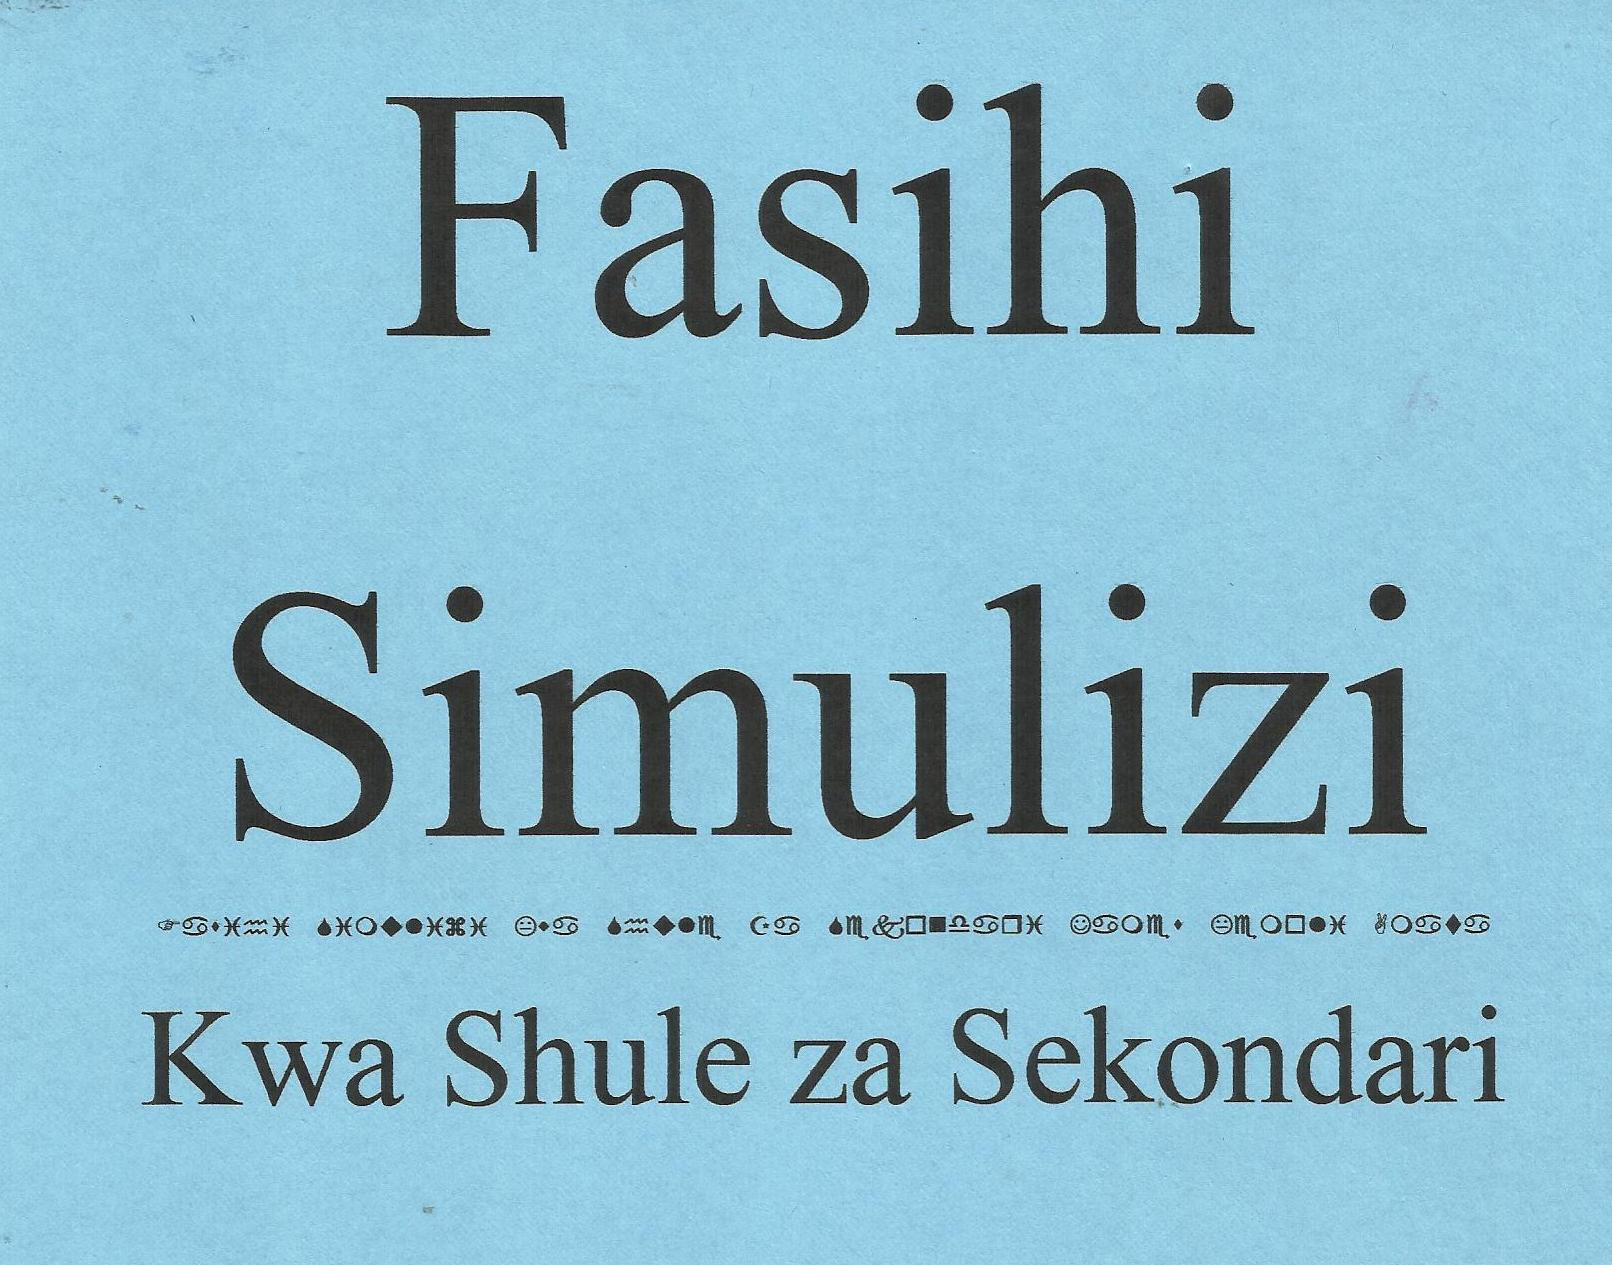 Fasihi Simulizi Notes Pdf Download